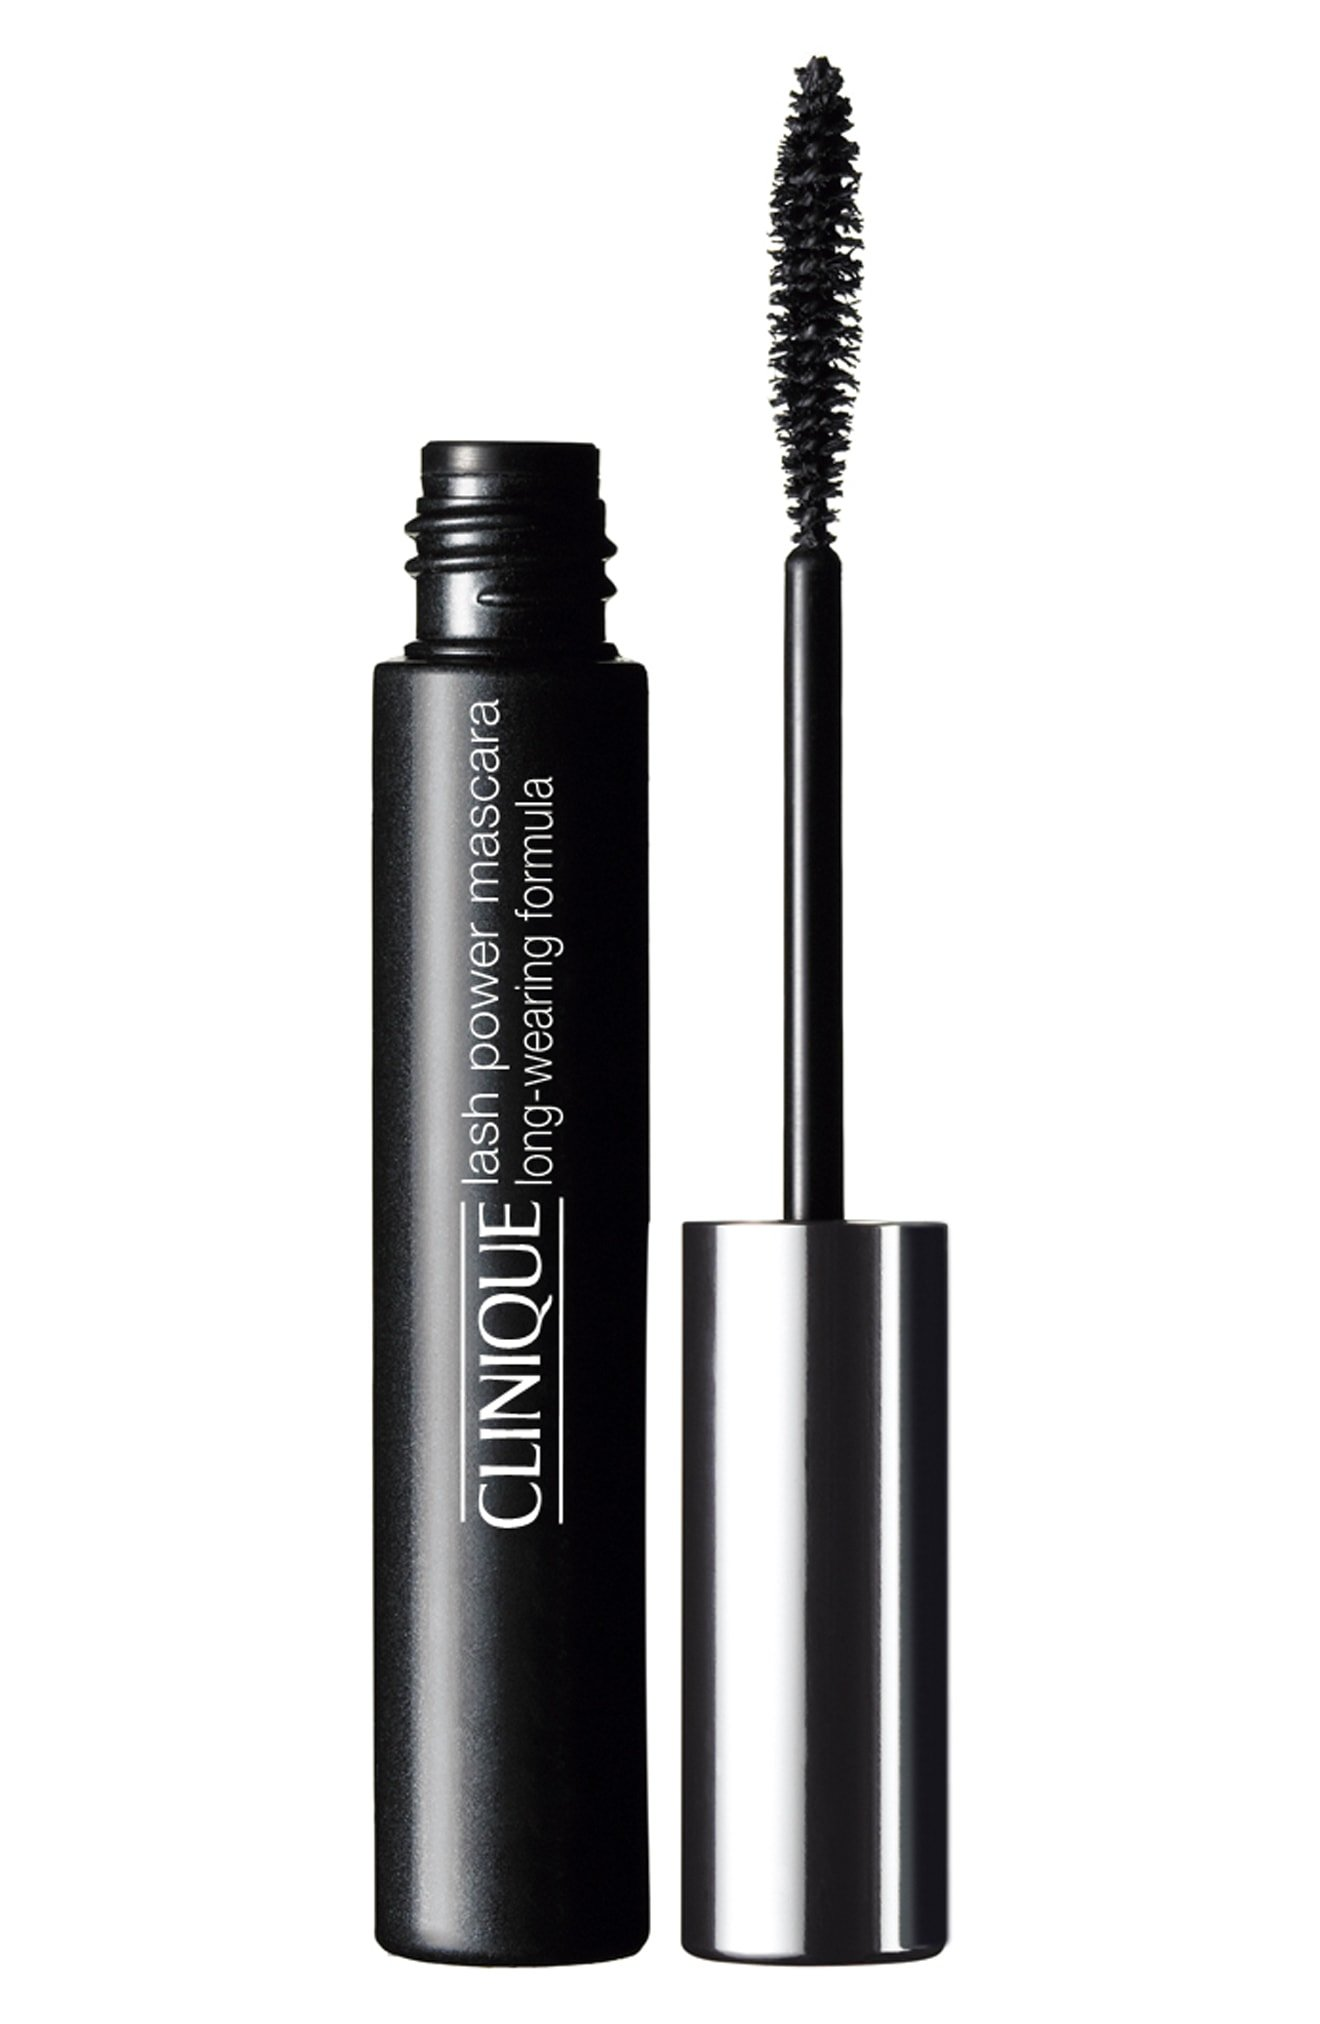 Blakstienų tušas Clinique Lash Power Mascara Long Wear 6 ml, 01 Black